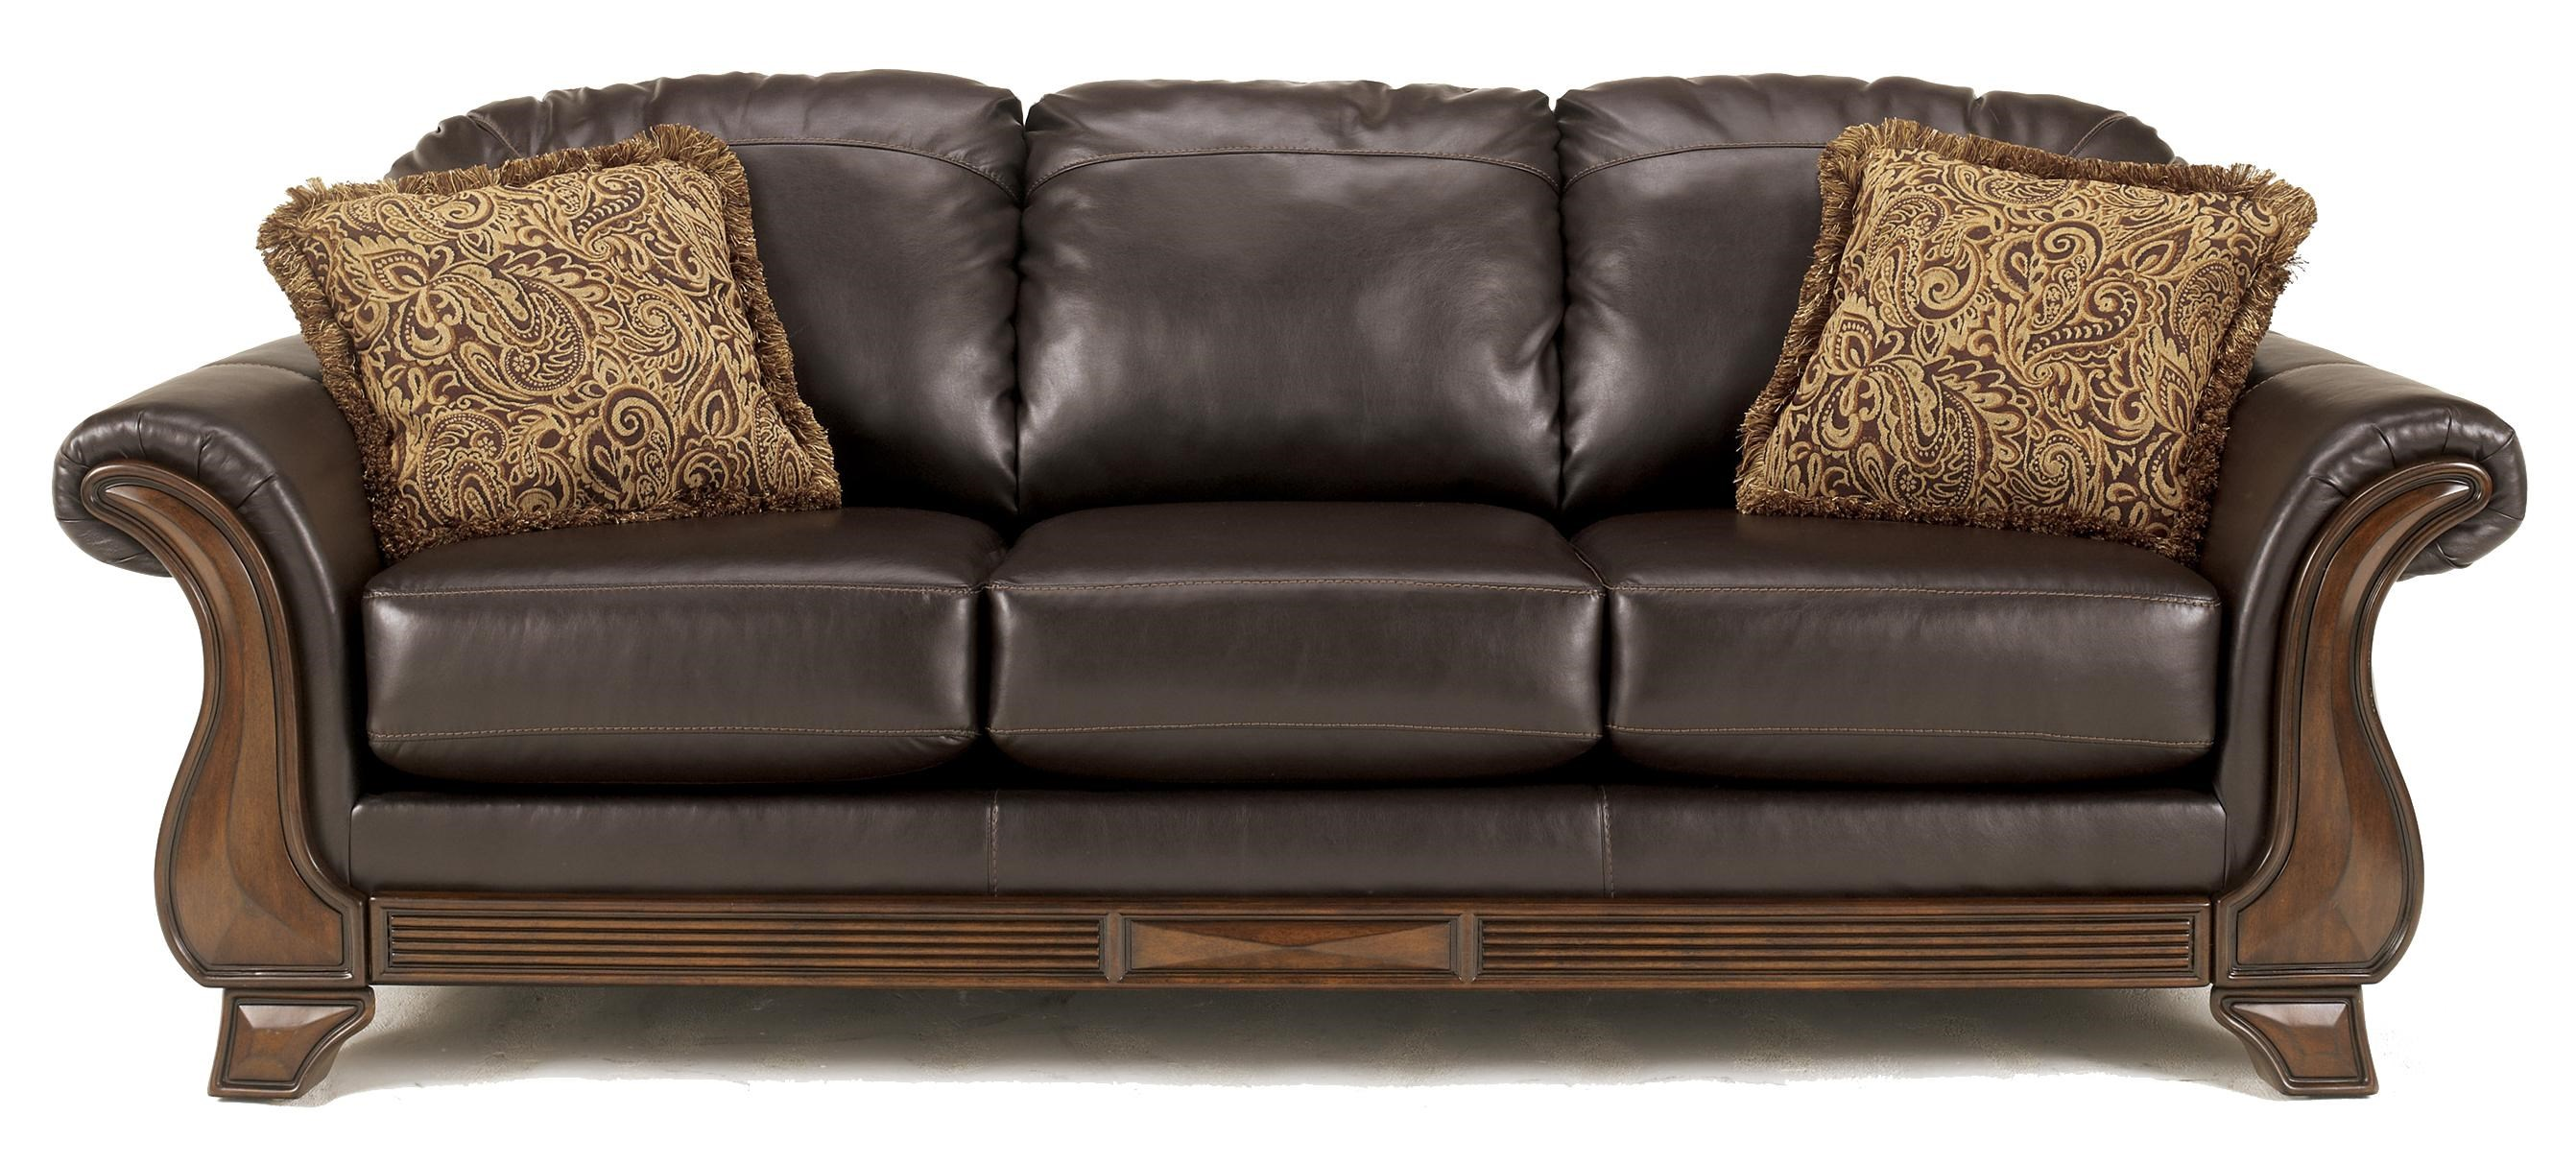 Brown Faux Leather Sofa Brown Faux Leather Sofa